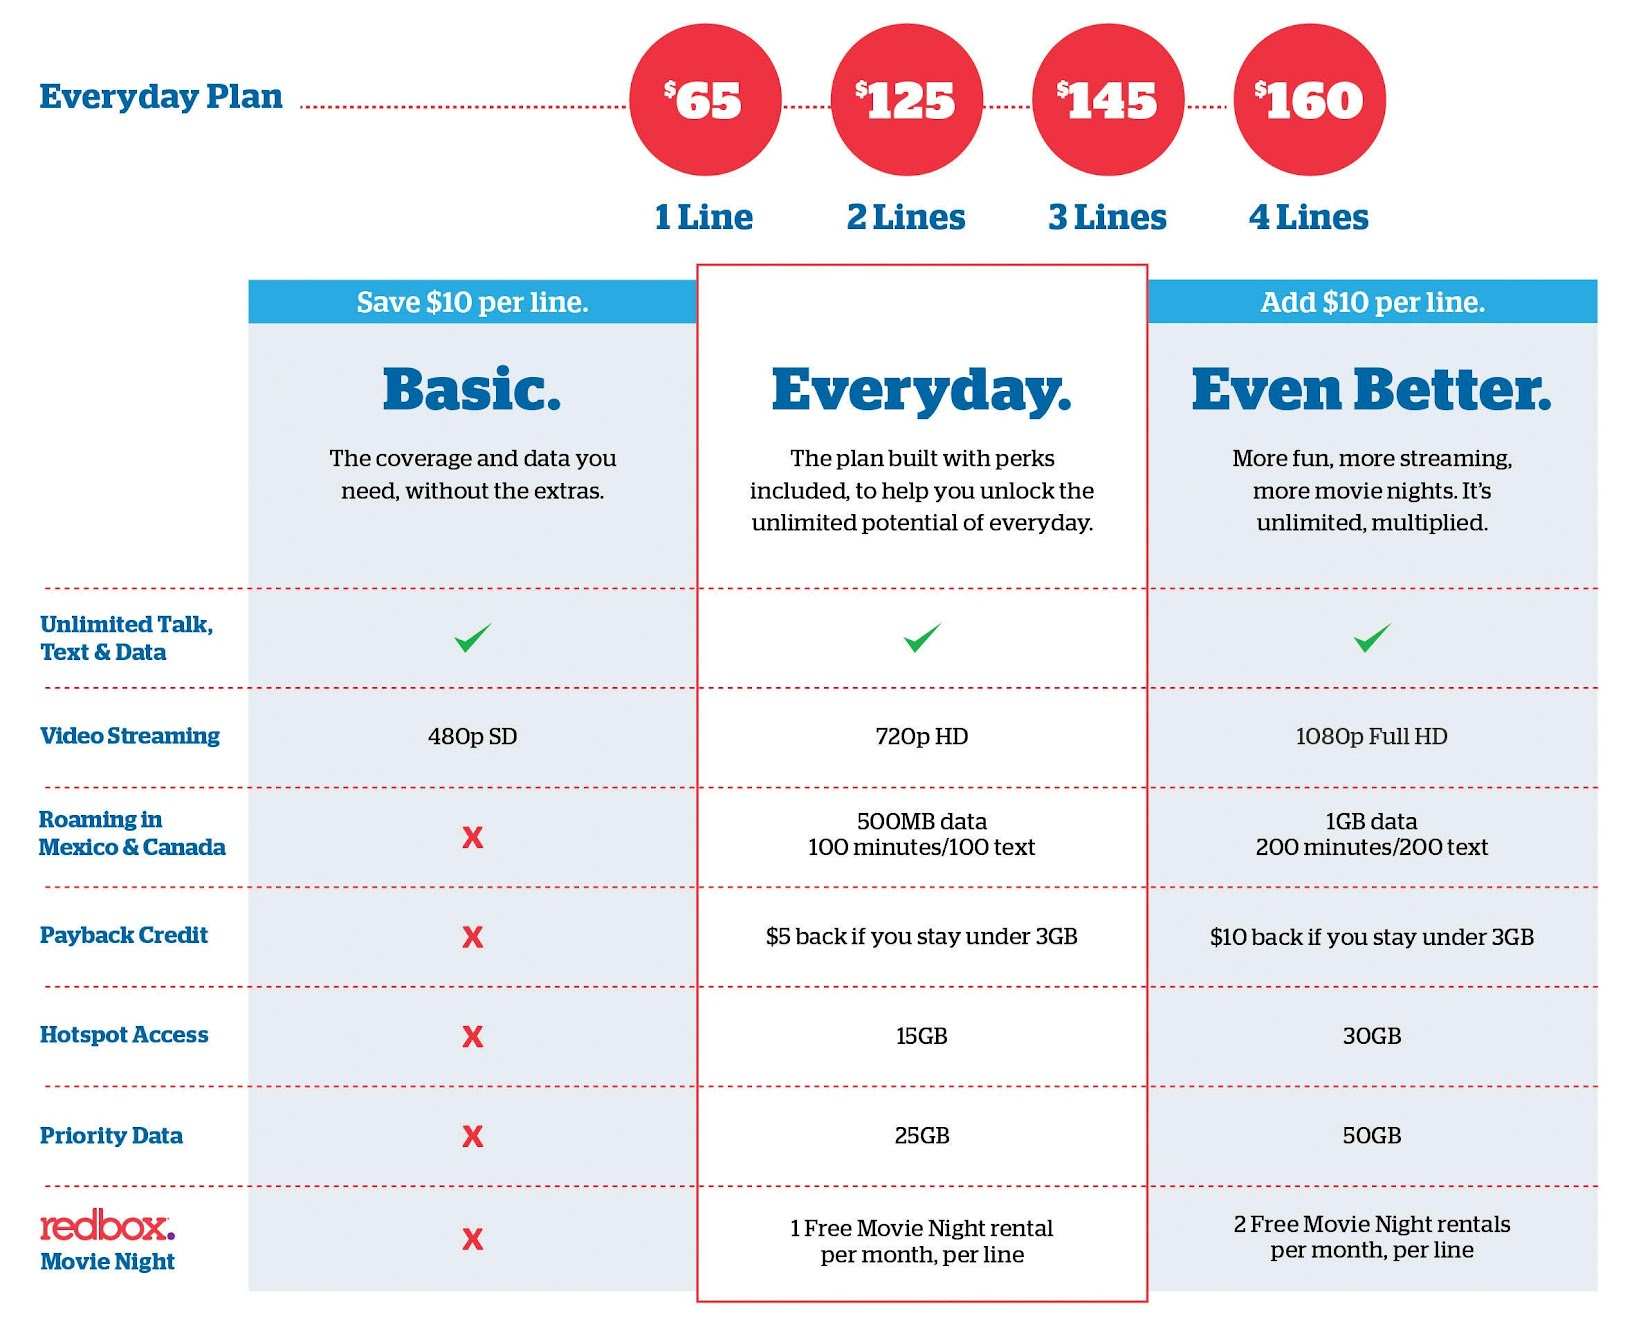 U.S. Cellular's new Basic, Everyday and Even Better Unlimited Plans let customers choose and customize a plan to match their lifestyle